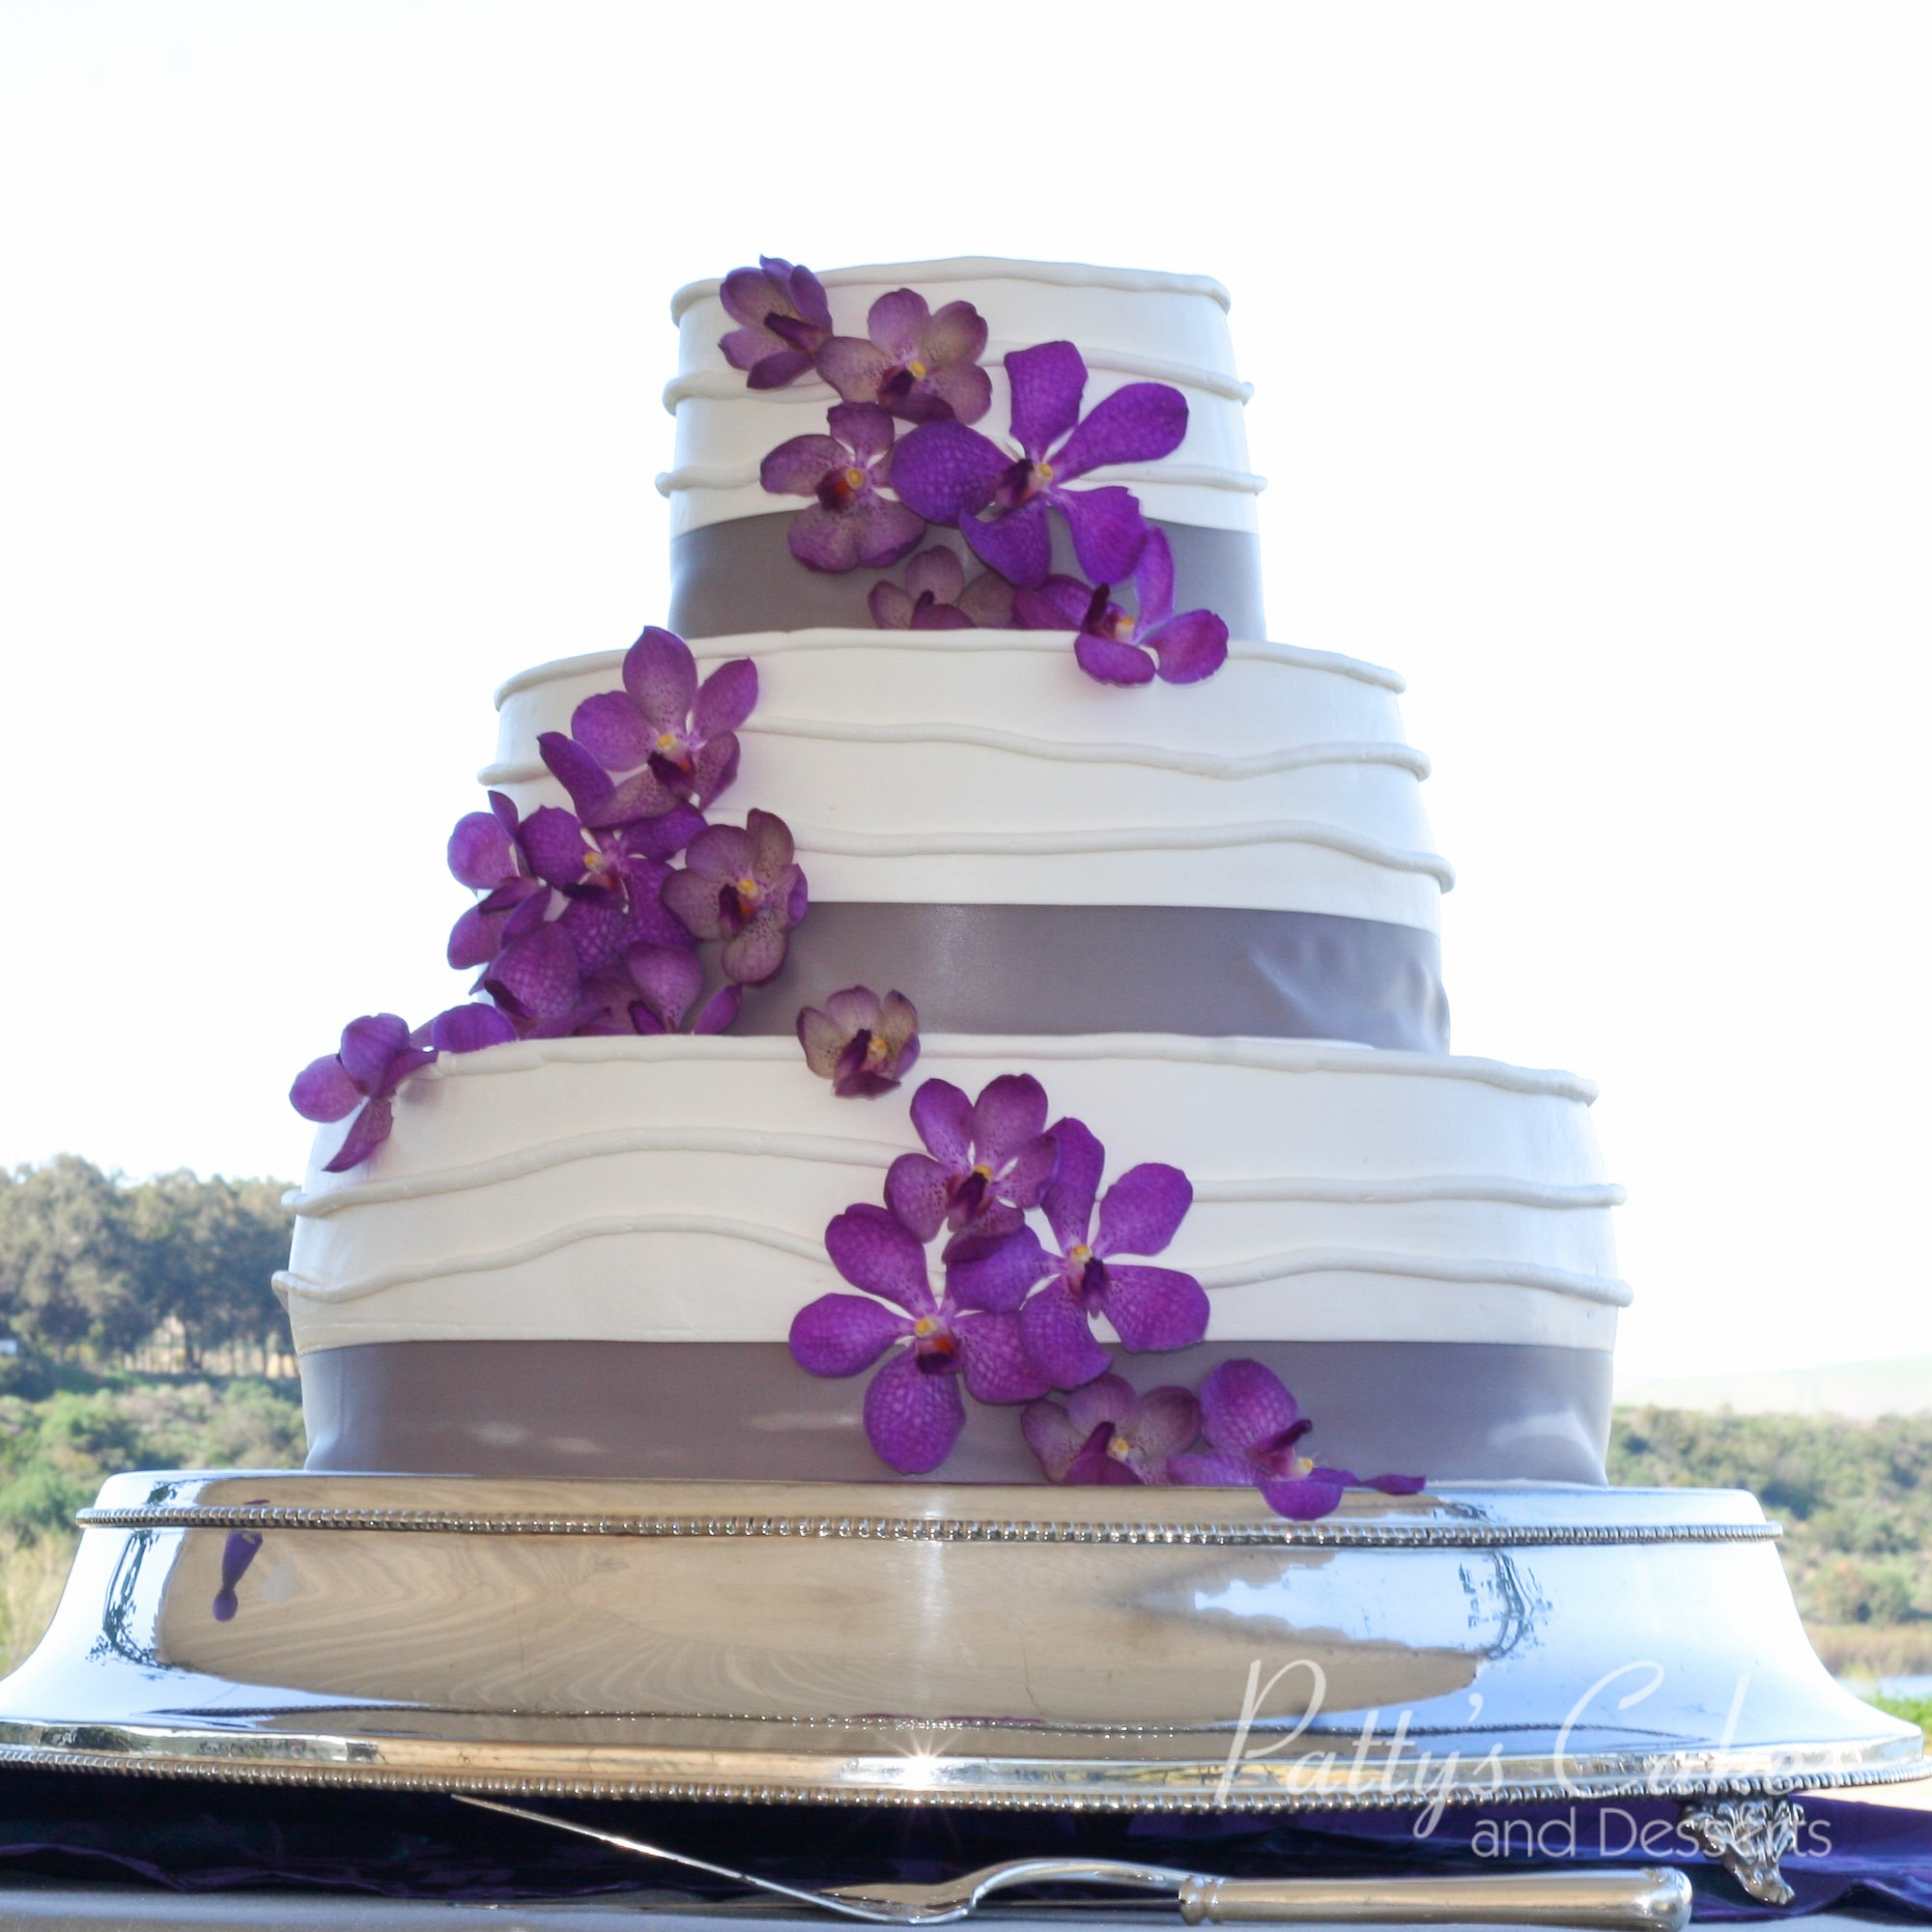 Outdoor Wedding Cake Ideas: Photo Of A Wedding Cake Stand Purple Flowers Outdoors